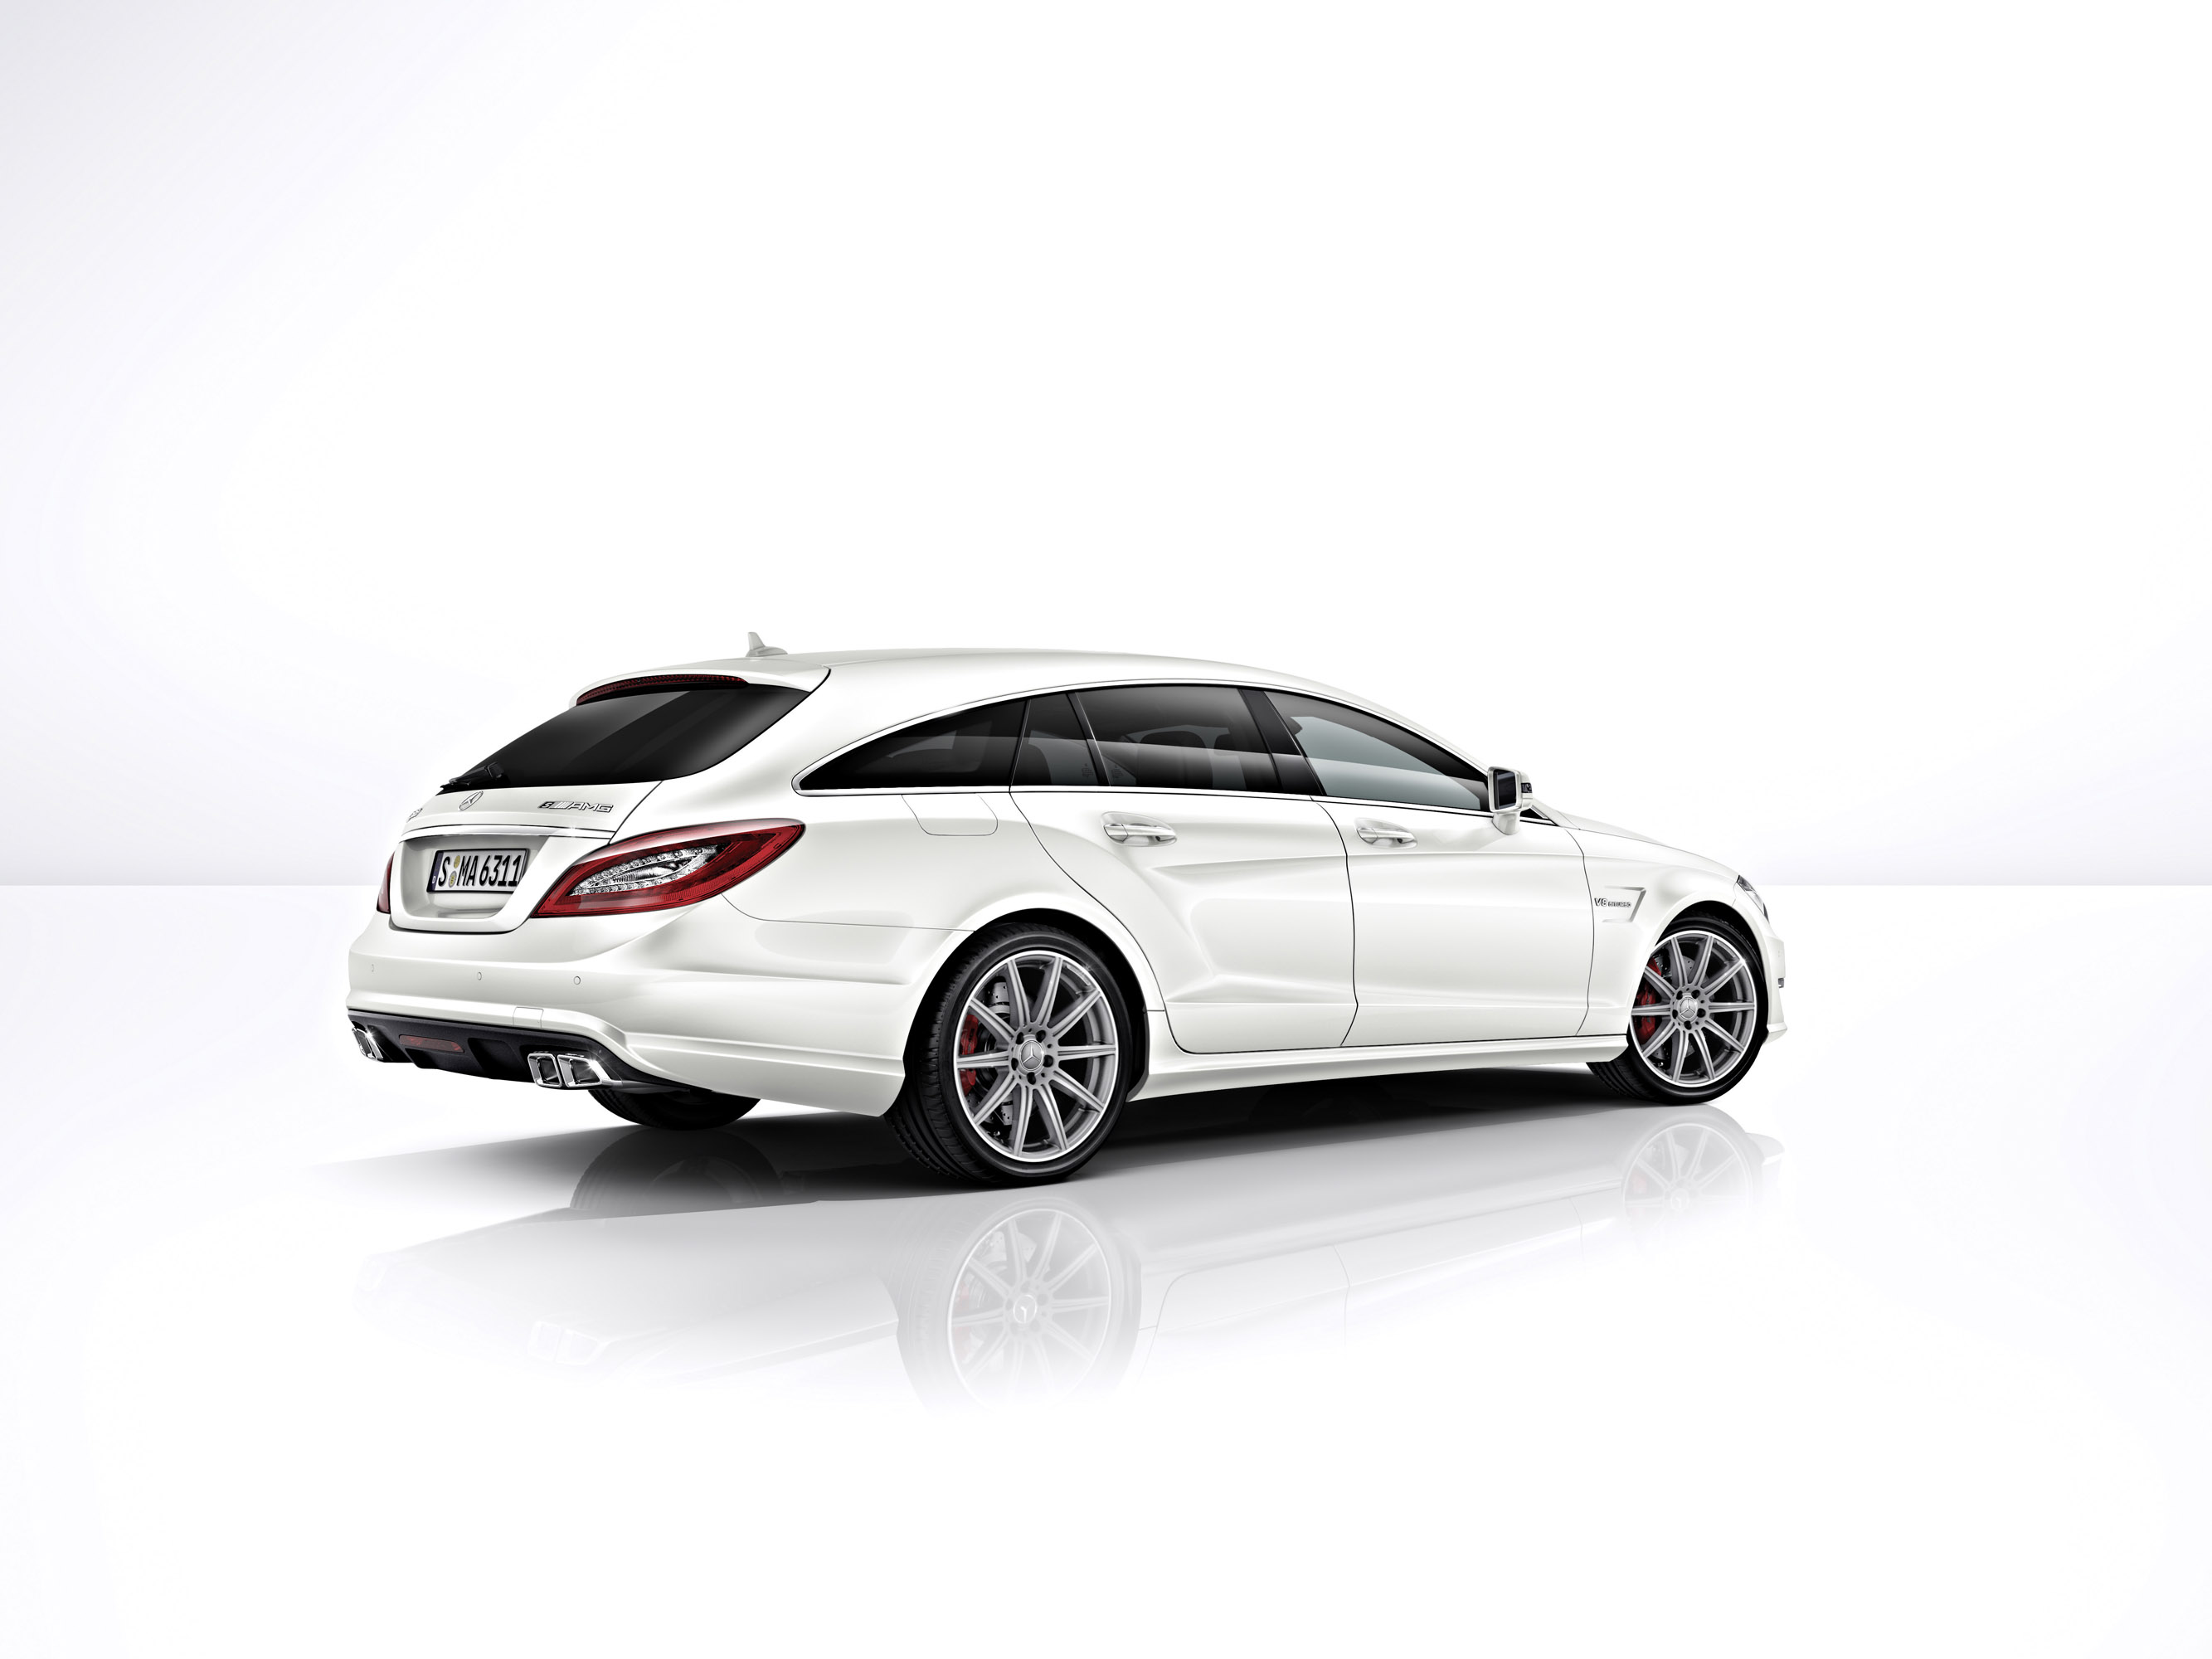 2013 mercedes benz cls 63 amg picture 79316 for 2013 mercedes benz cls 63 amg